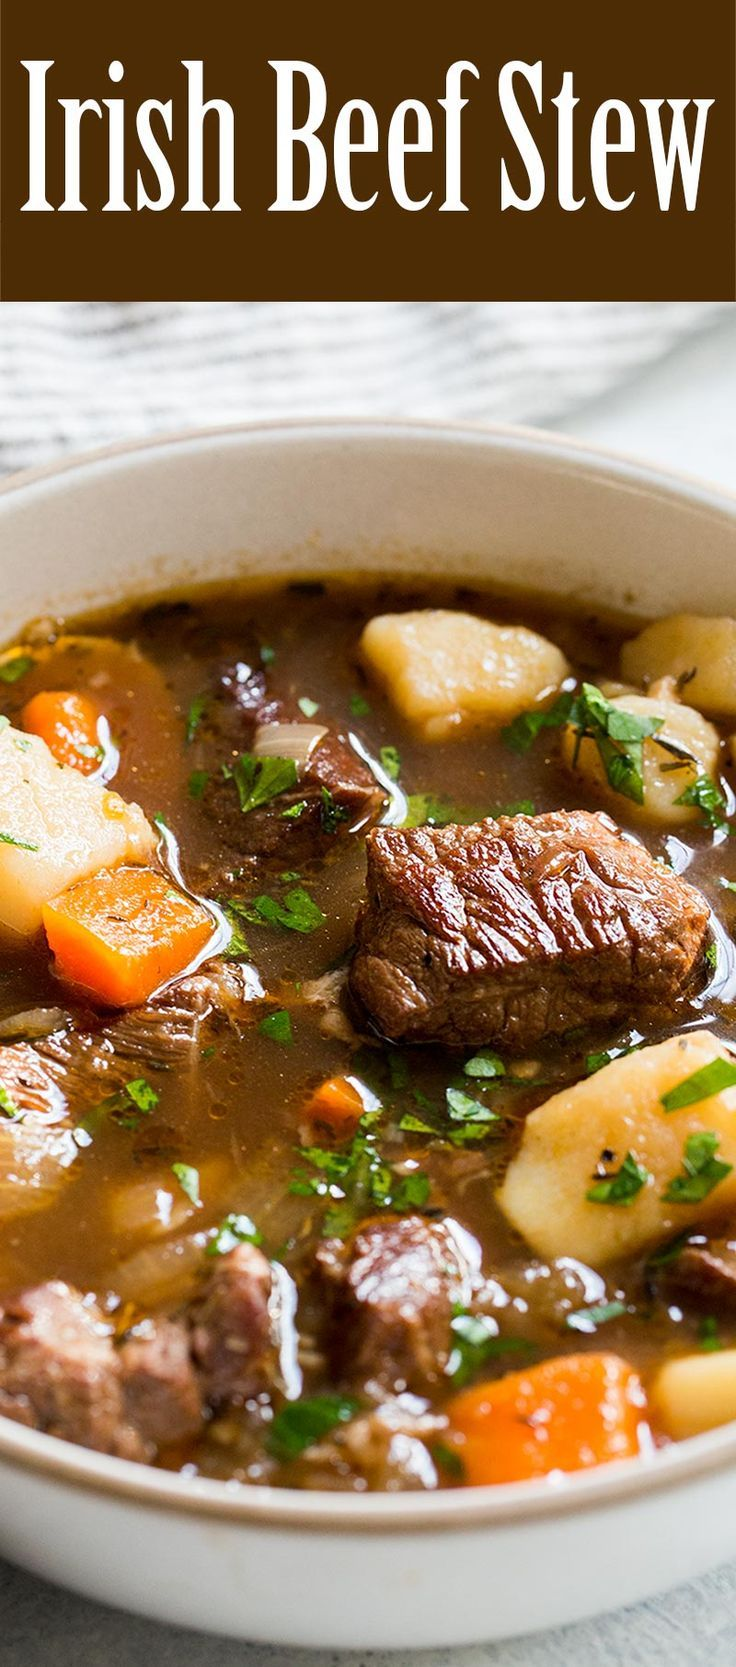 BEST Irish Beef Stew! Made with beef, garlic, stock, Irish Guinness stout, red wine, potatoes, carrots, and onions. A hearty stew perfect for celebrating St. Patrick's Day! On http://SimplyRecipes.com